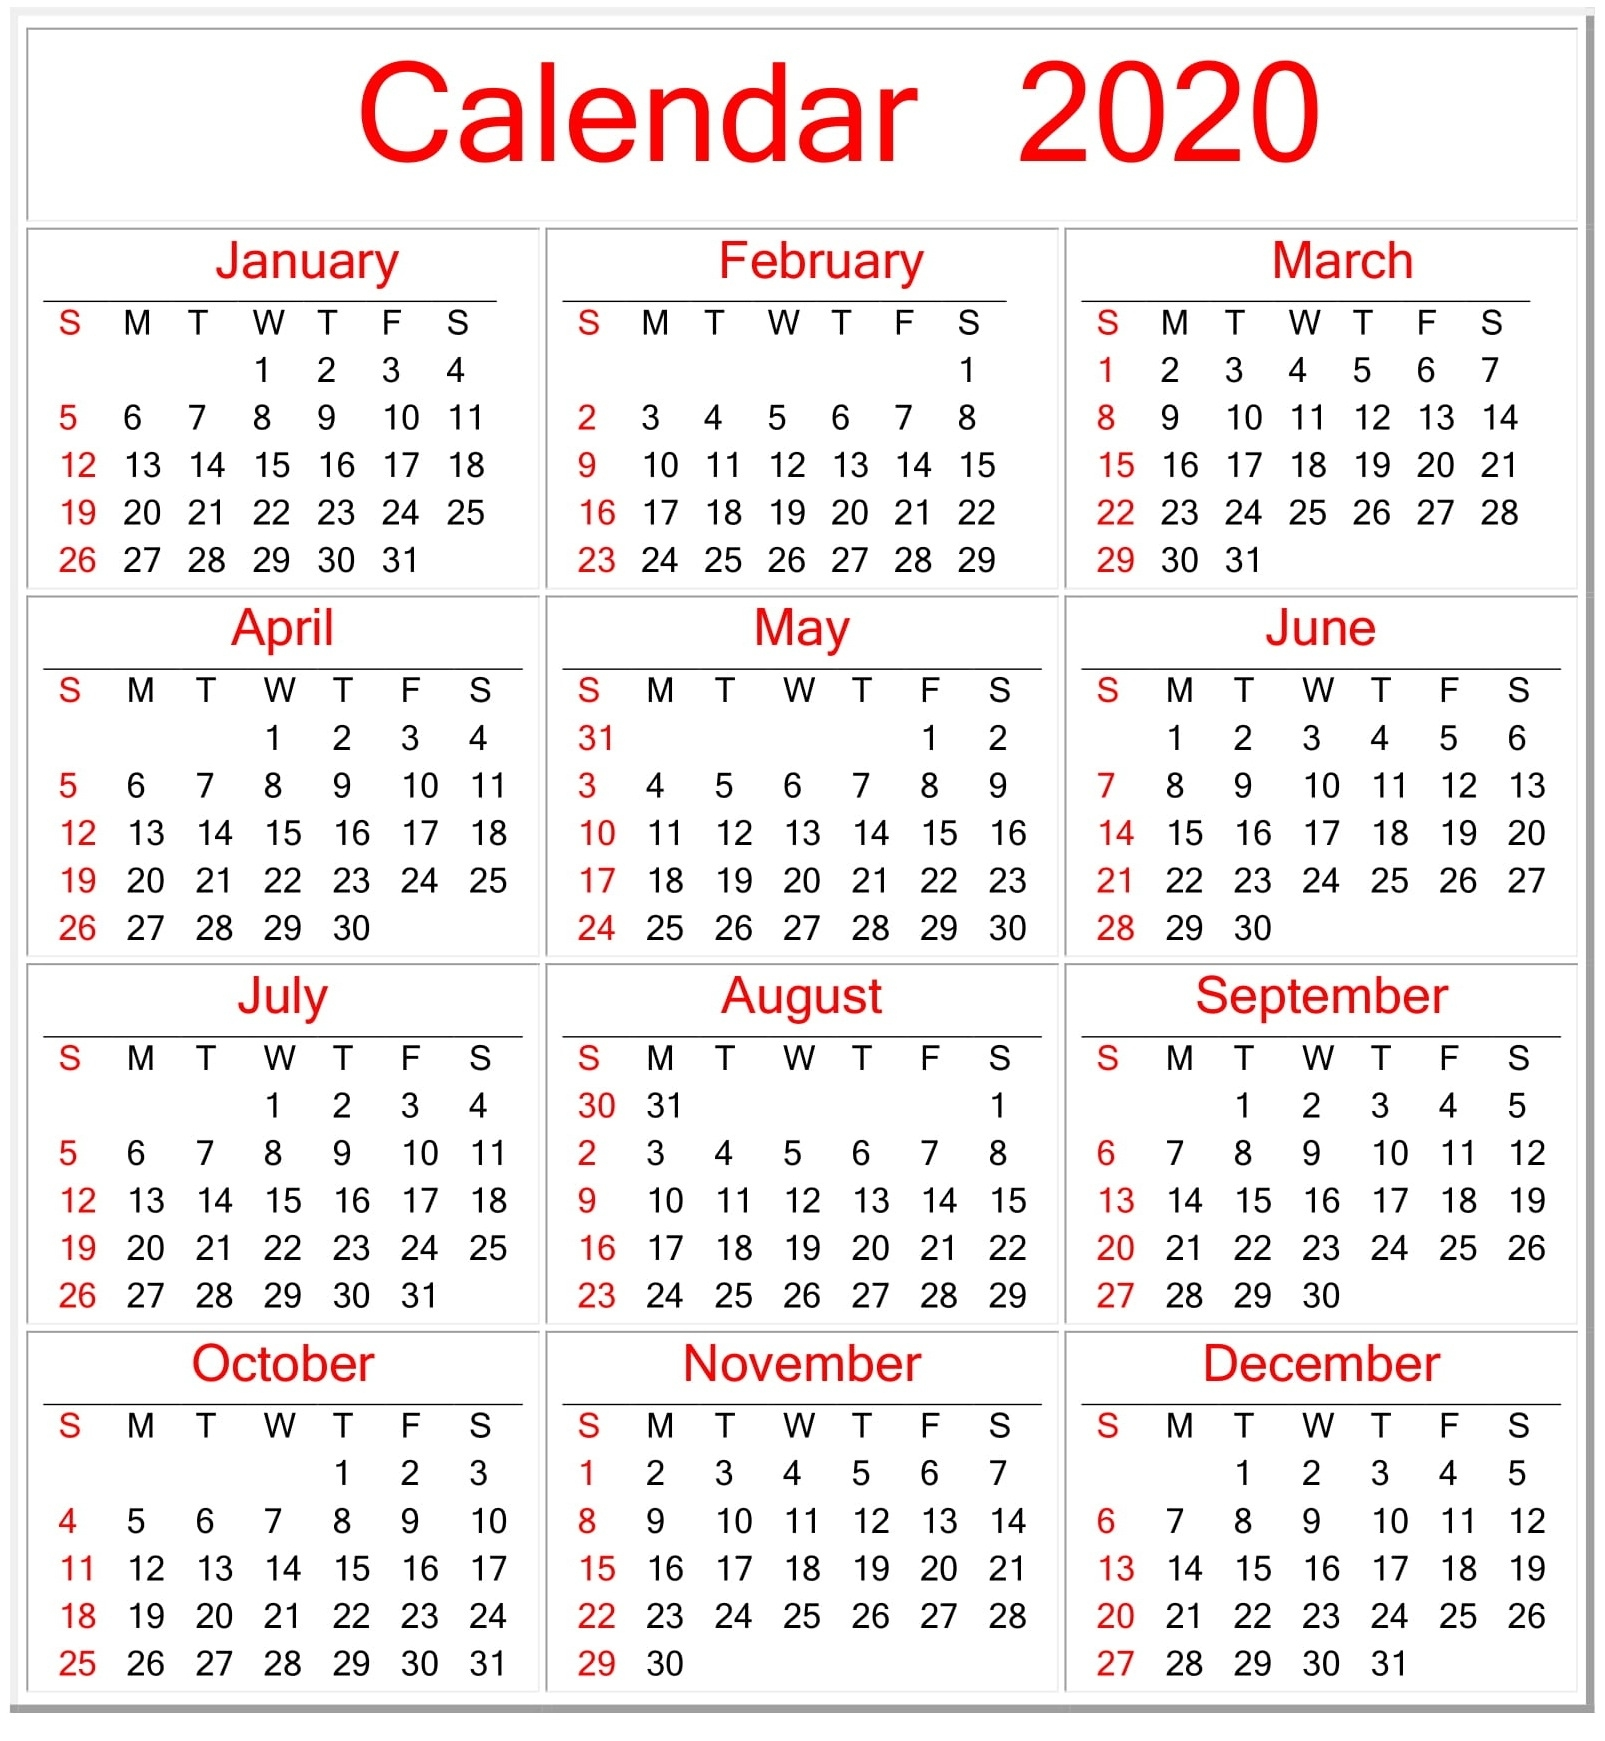 Printable Calendar 2020 Pdf Template – Free Latest Calendar Perky Year Calendar 2020 Printable